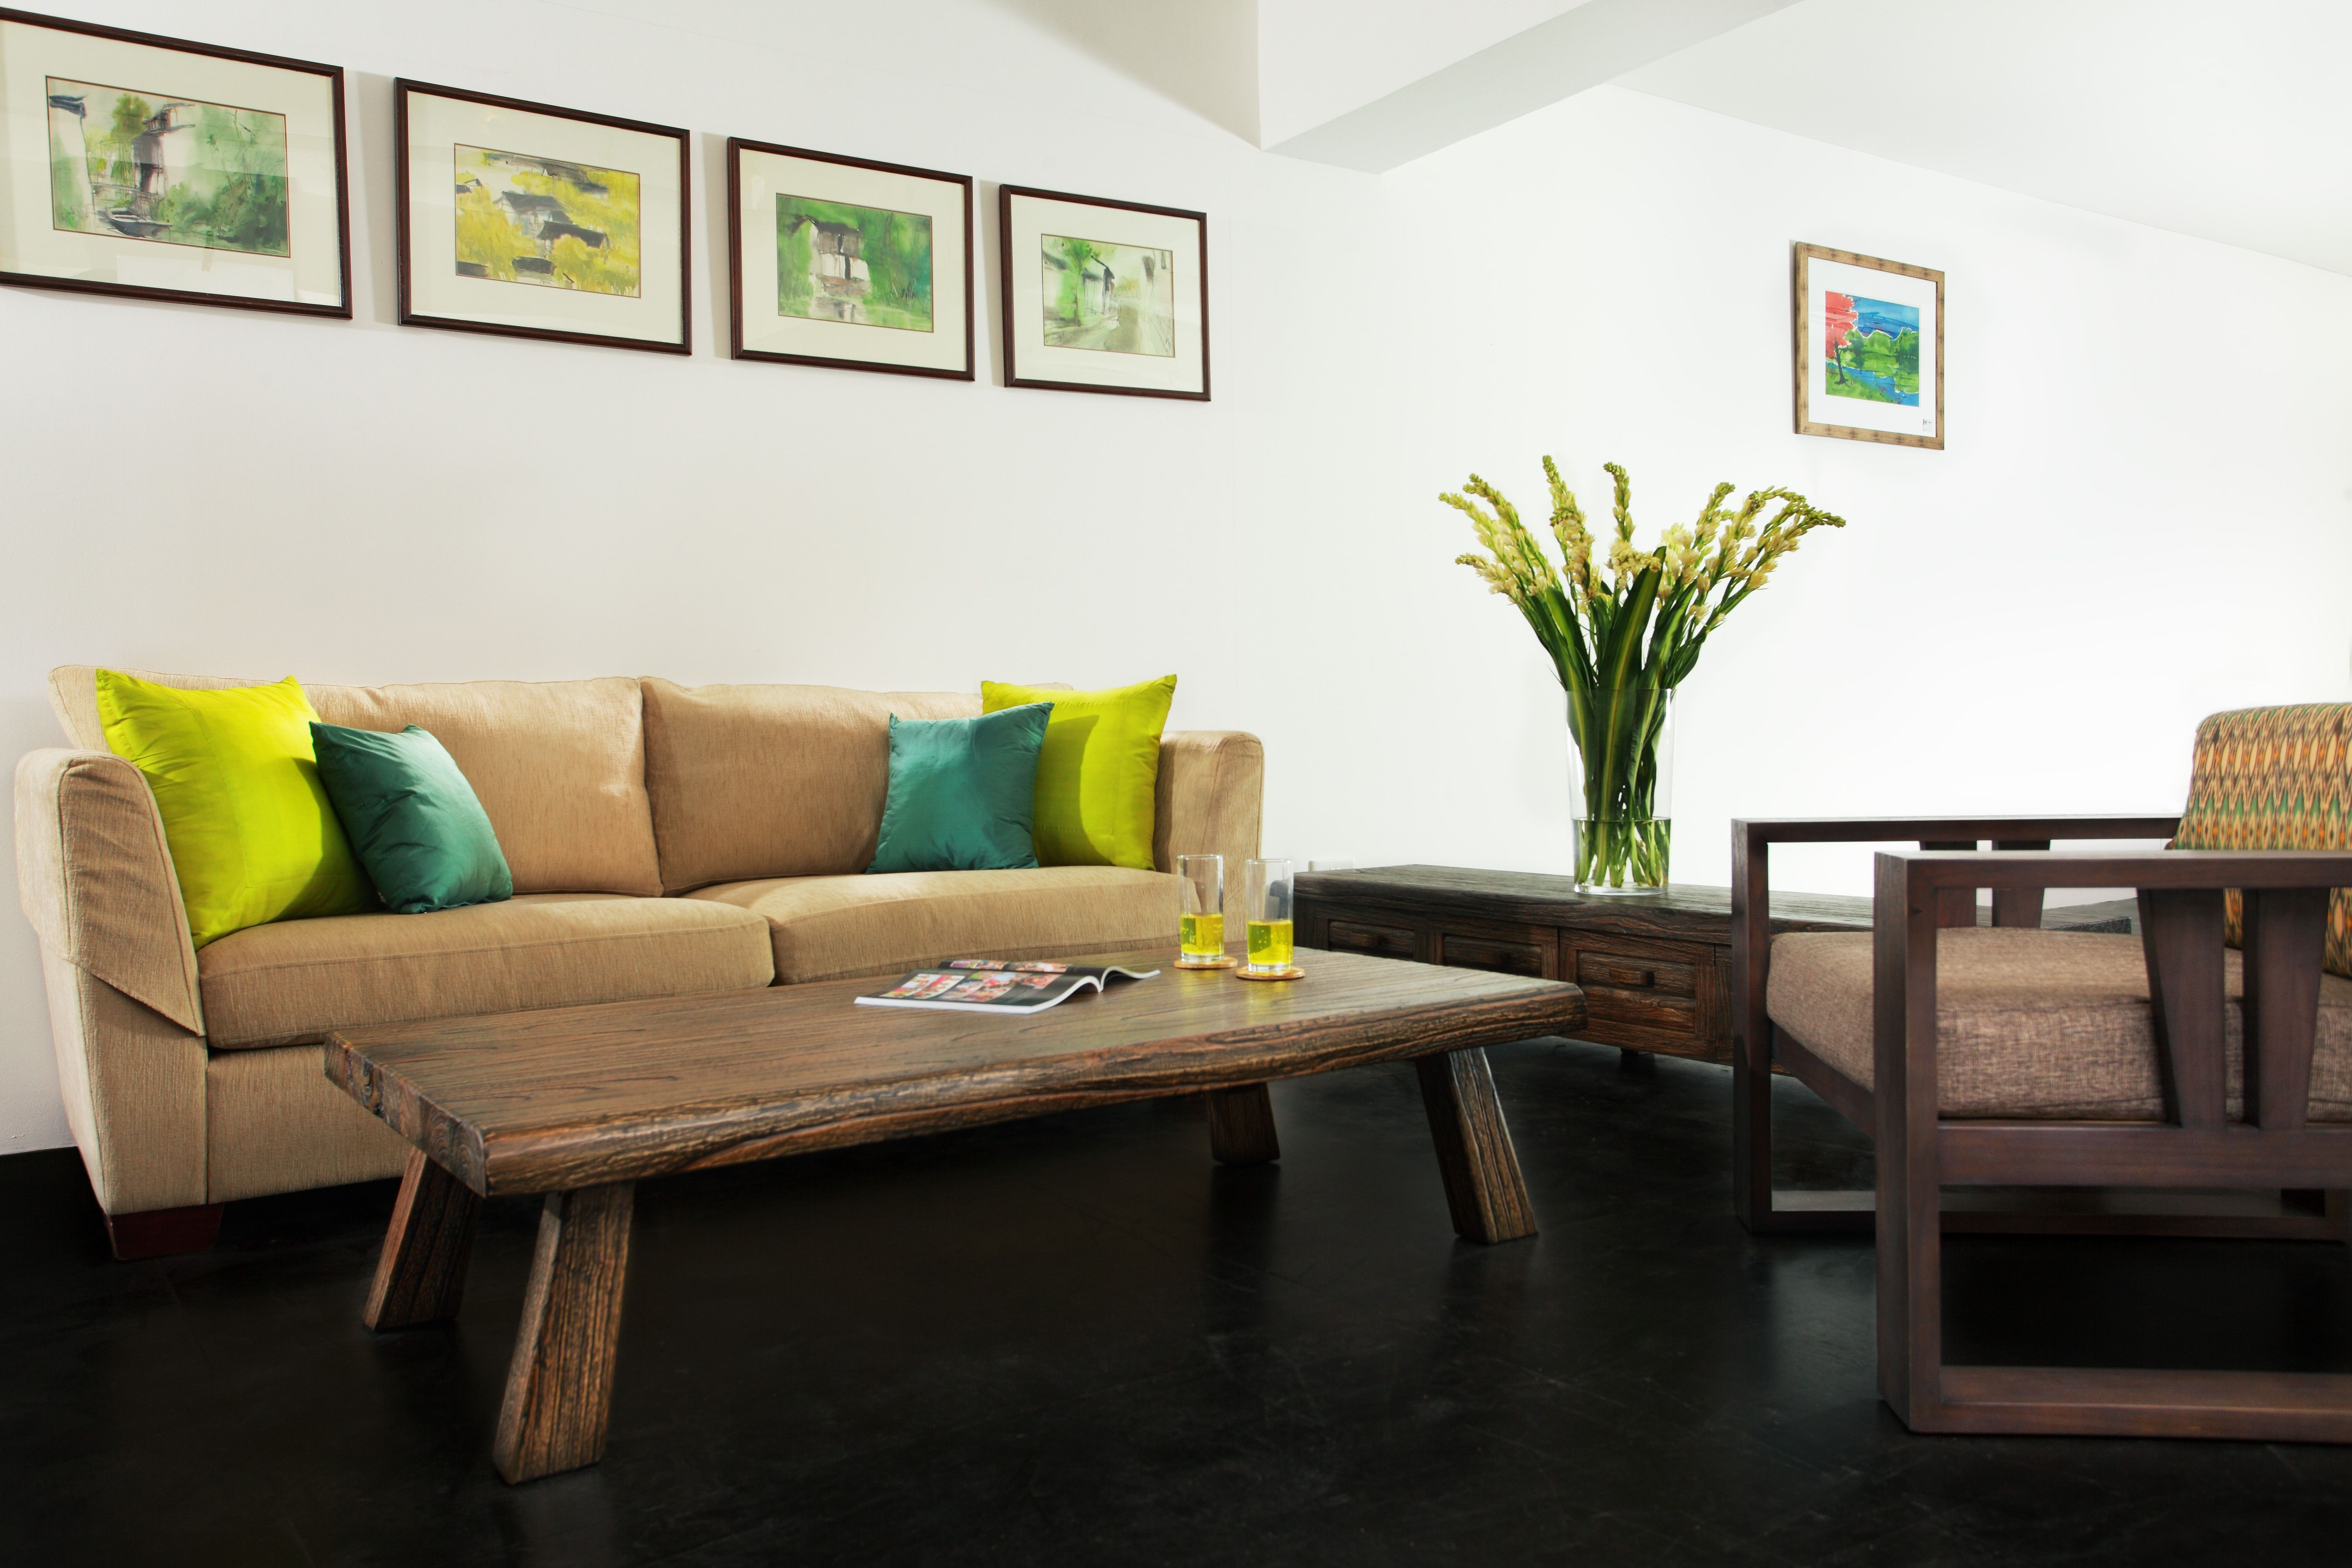 earthy furniture. Share Your Stories Through Living Room Furniture With Earthy Texture Fused Welcoming Green And Y